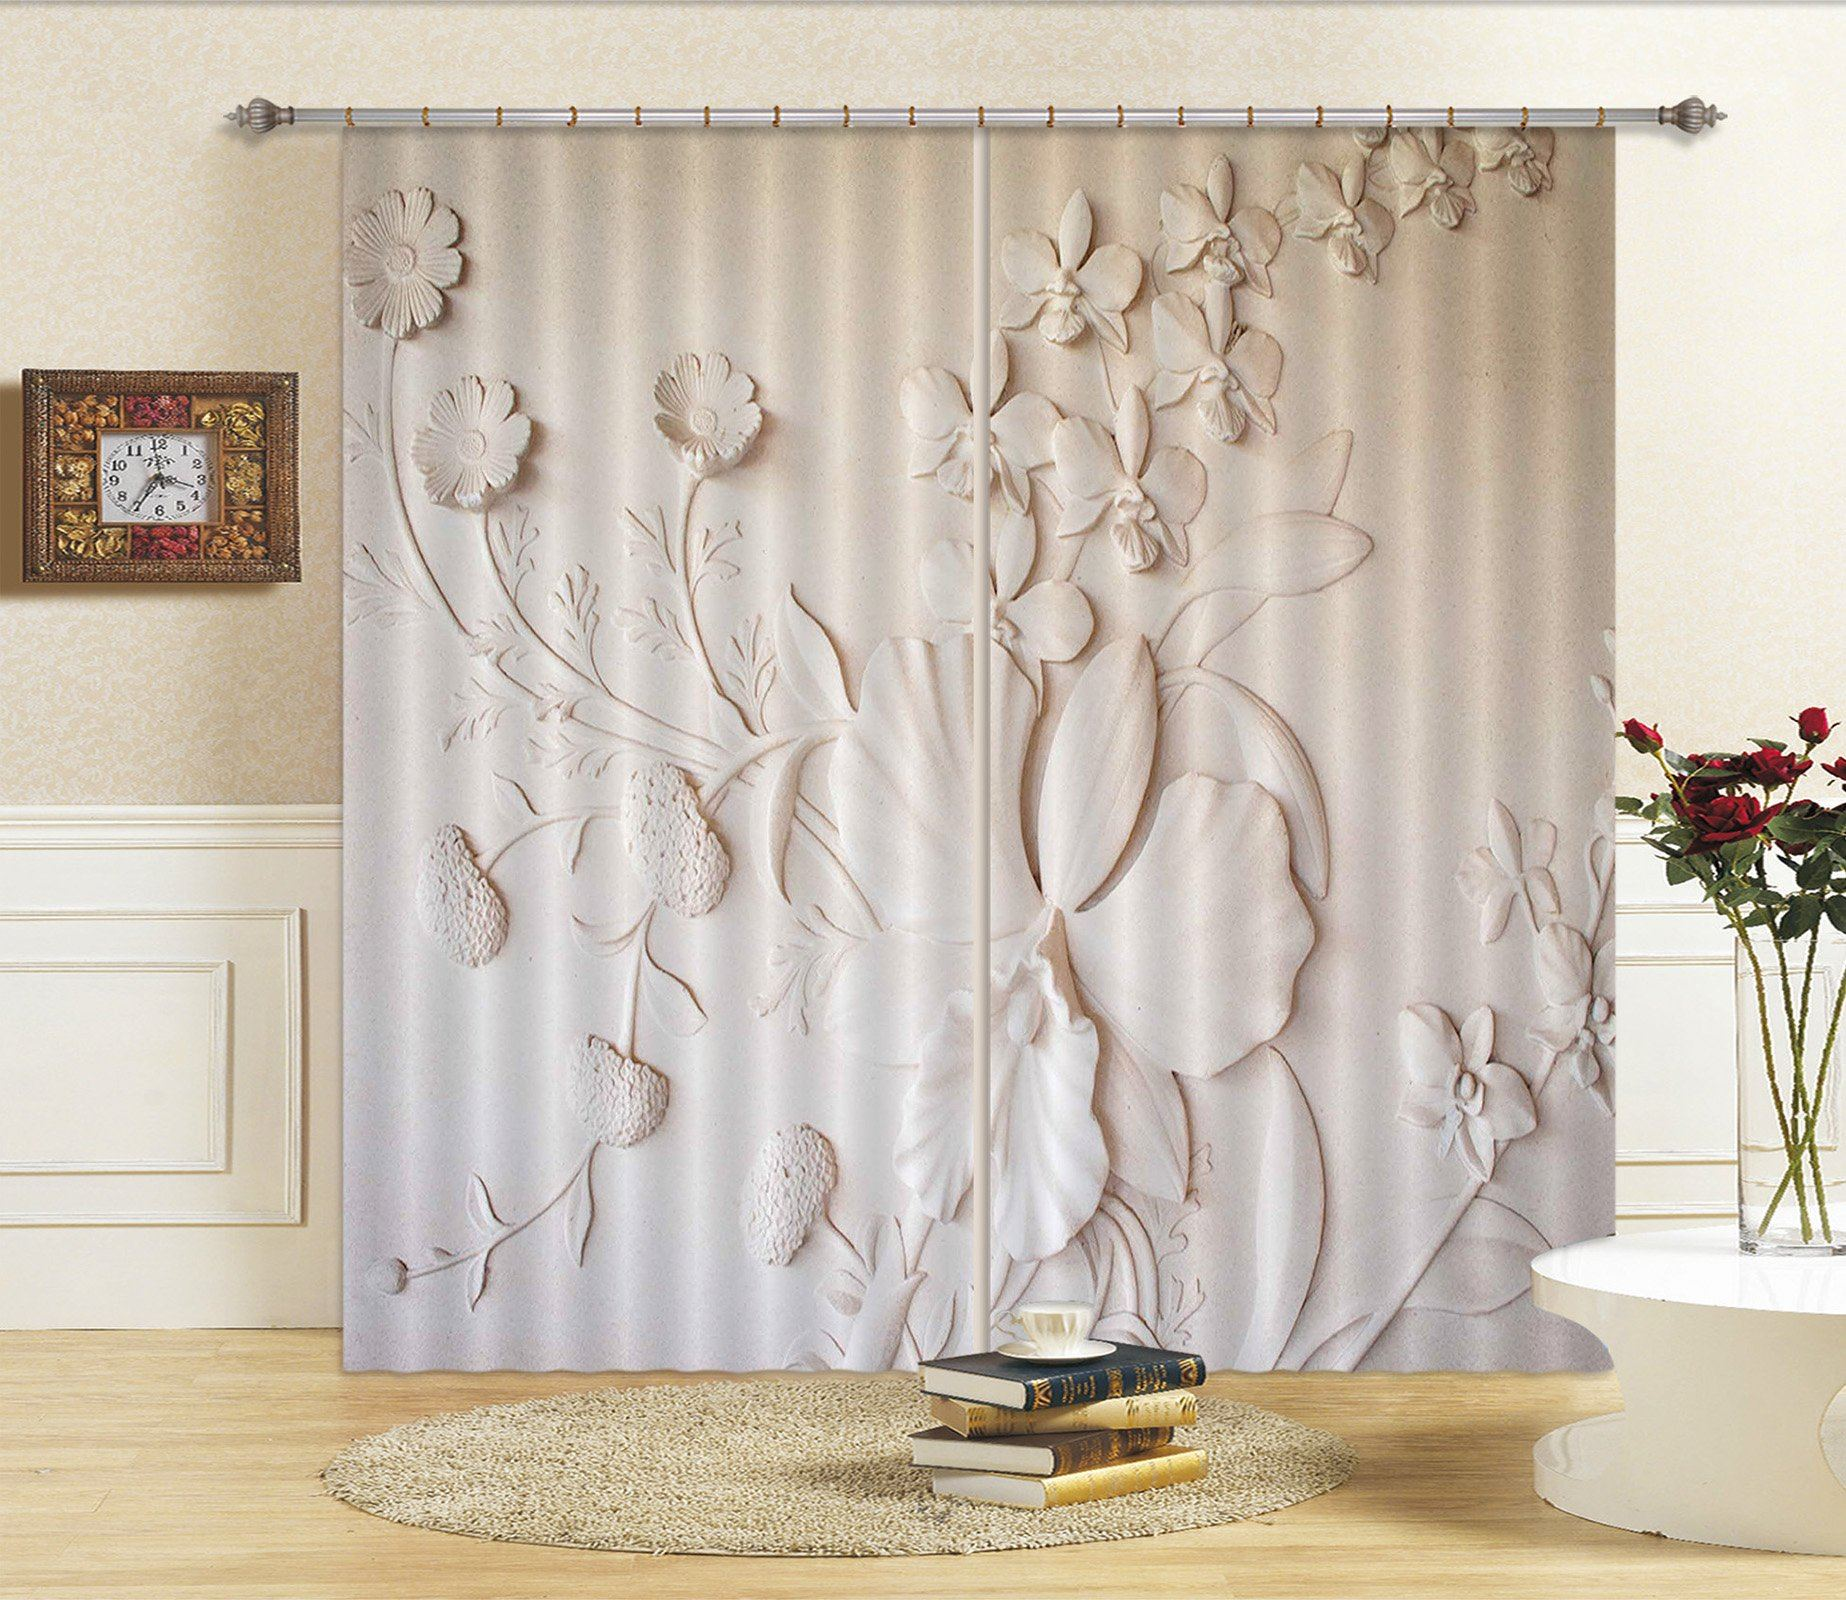 3D Blooming Llily 067 Curtains Drapes Curtains AJ Creativity Home